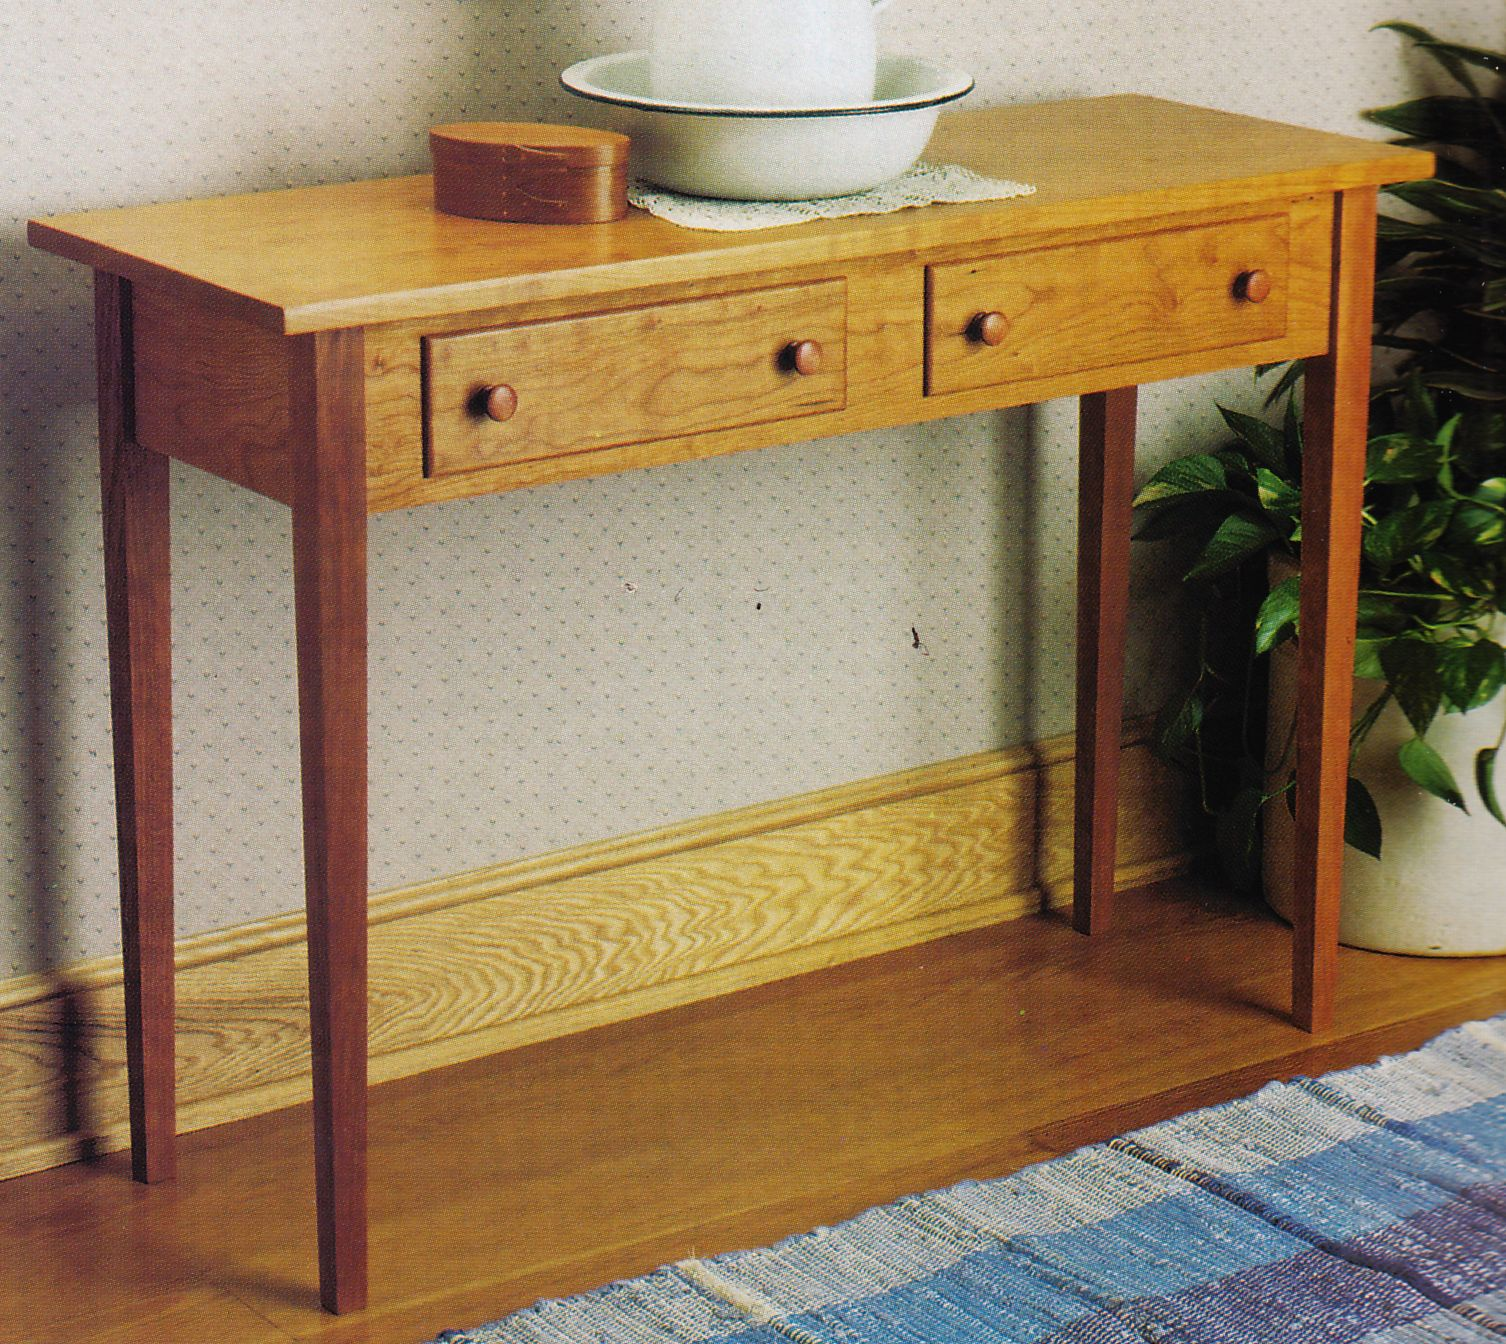 Shaker hall table from Woodsmith Custom Woodworking's American Style: Shaker, Mission & Country Projects. If interested, please ask for a free quote on this item. We'd love to build it for you.